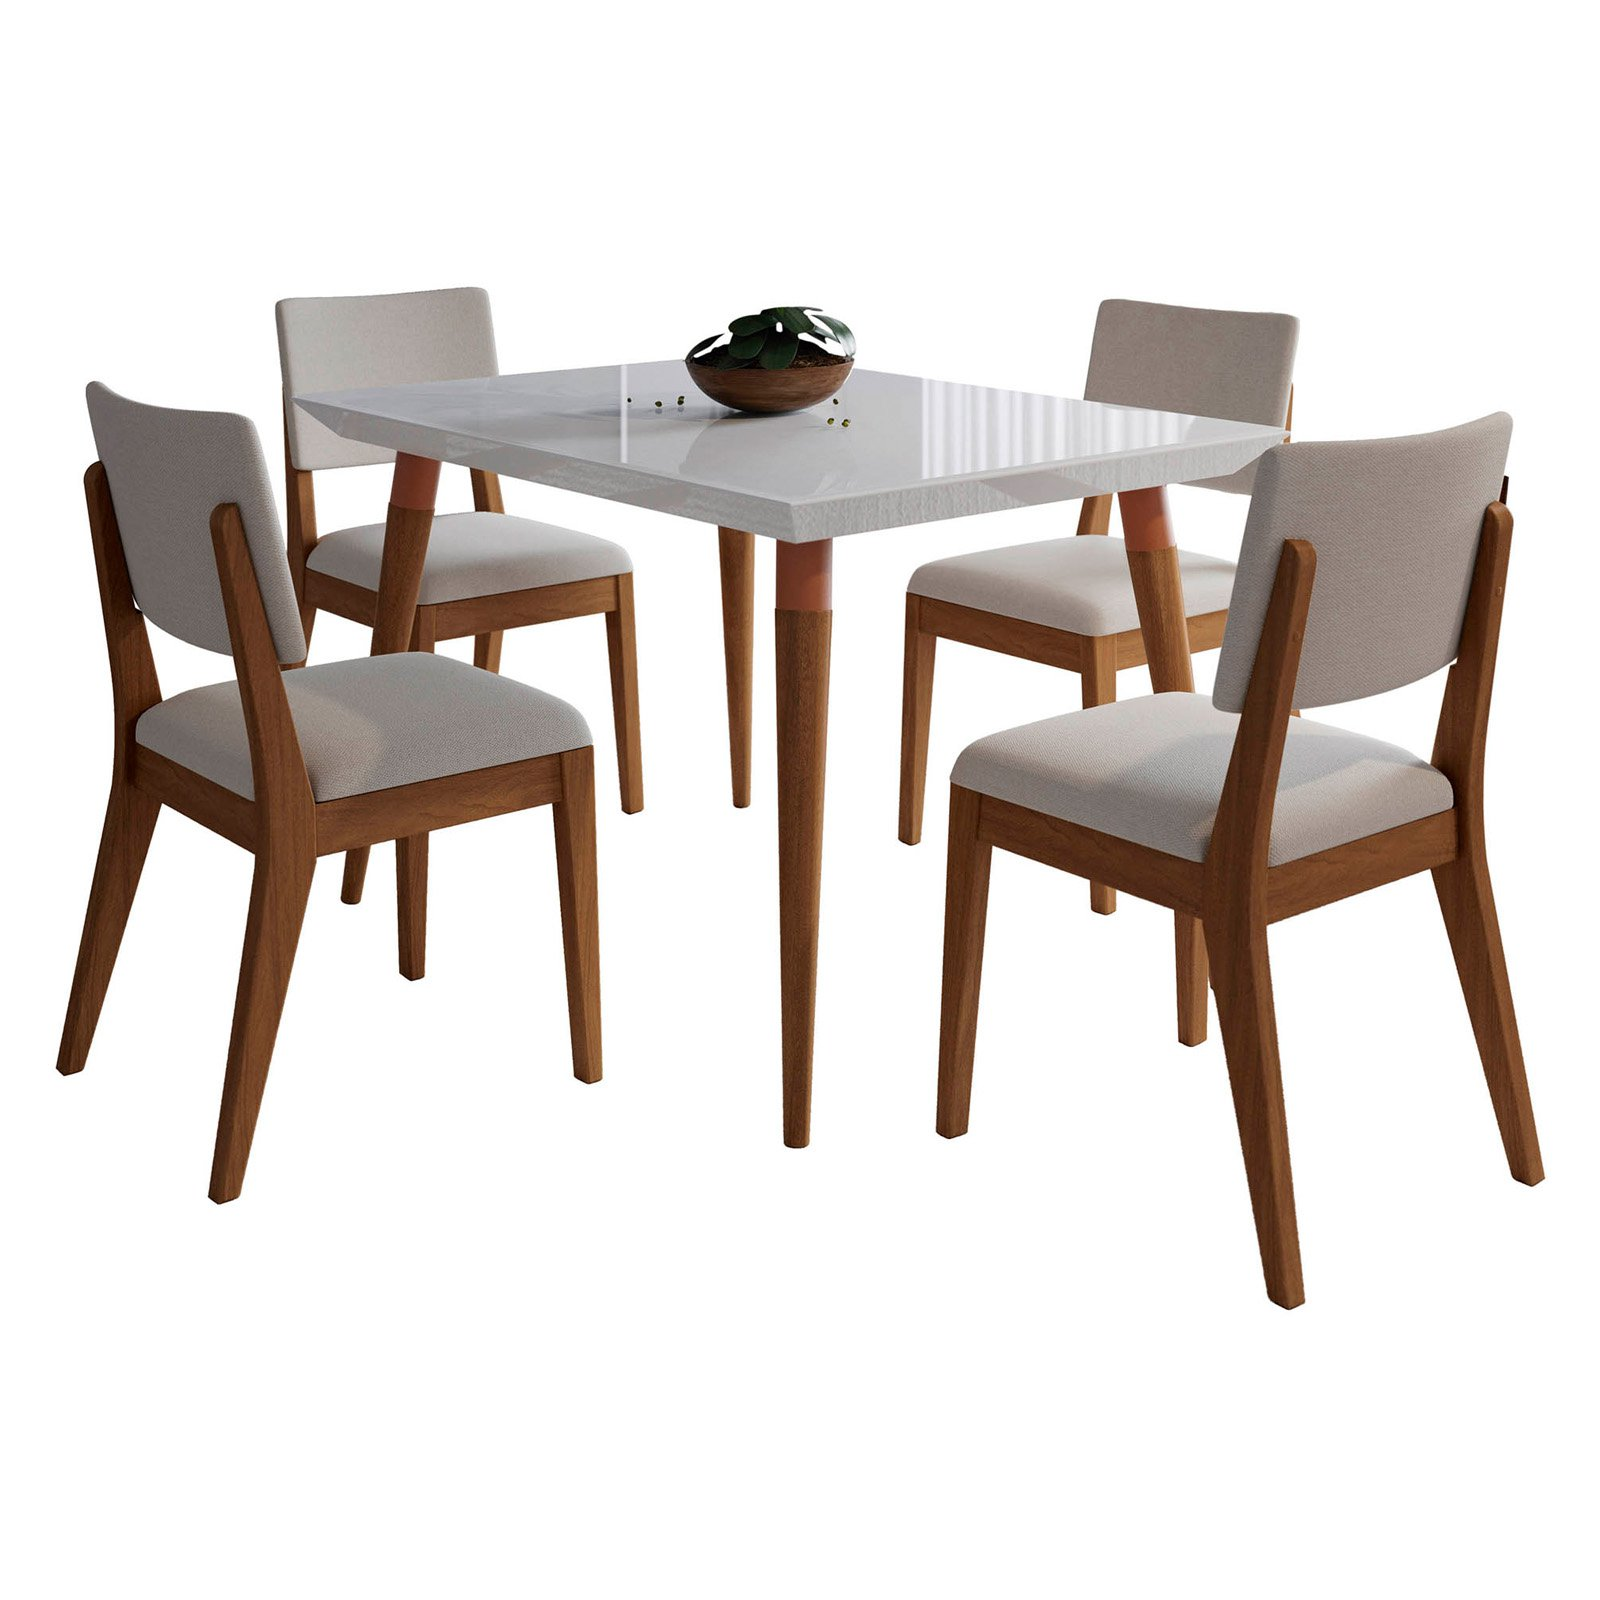 Manhattan Comfort Utopia and Dover 5 Piece Dining Table Set